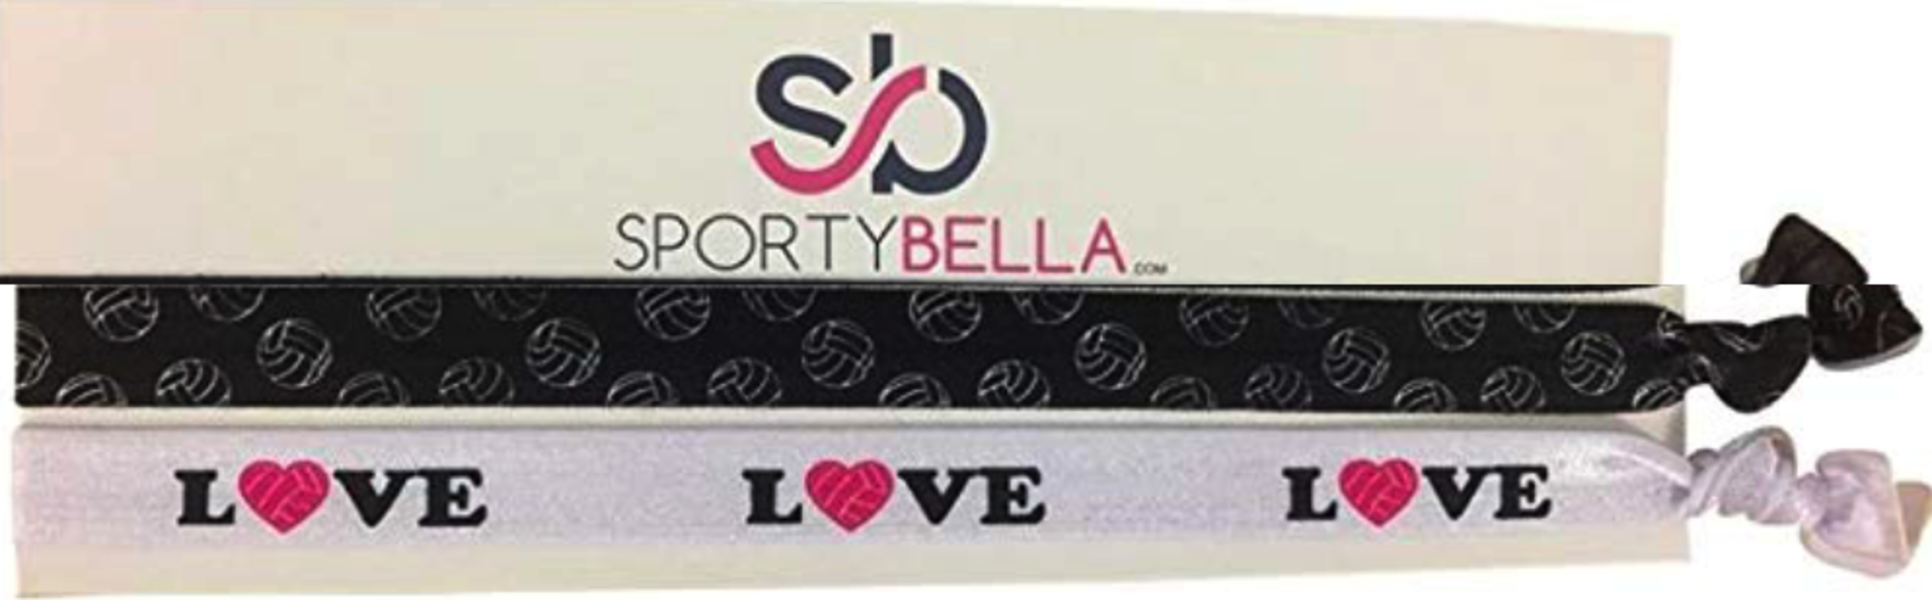 Love Volleyball Headbands - 2pc Set